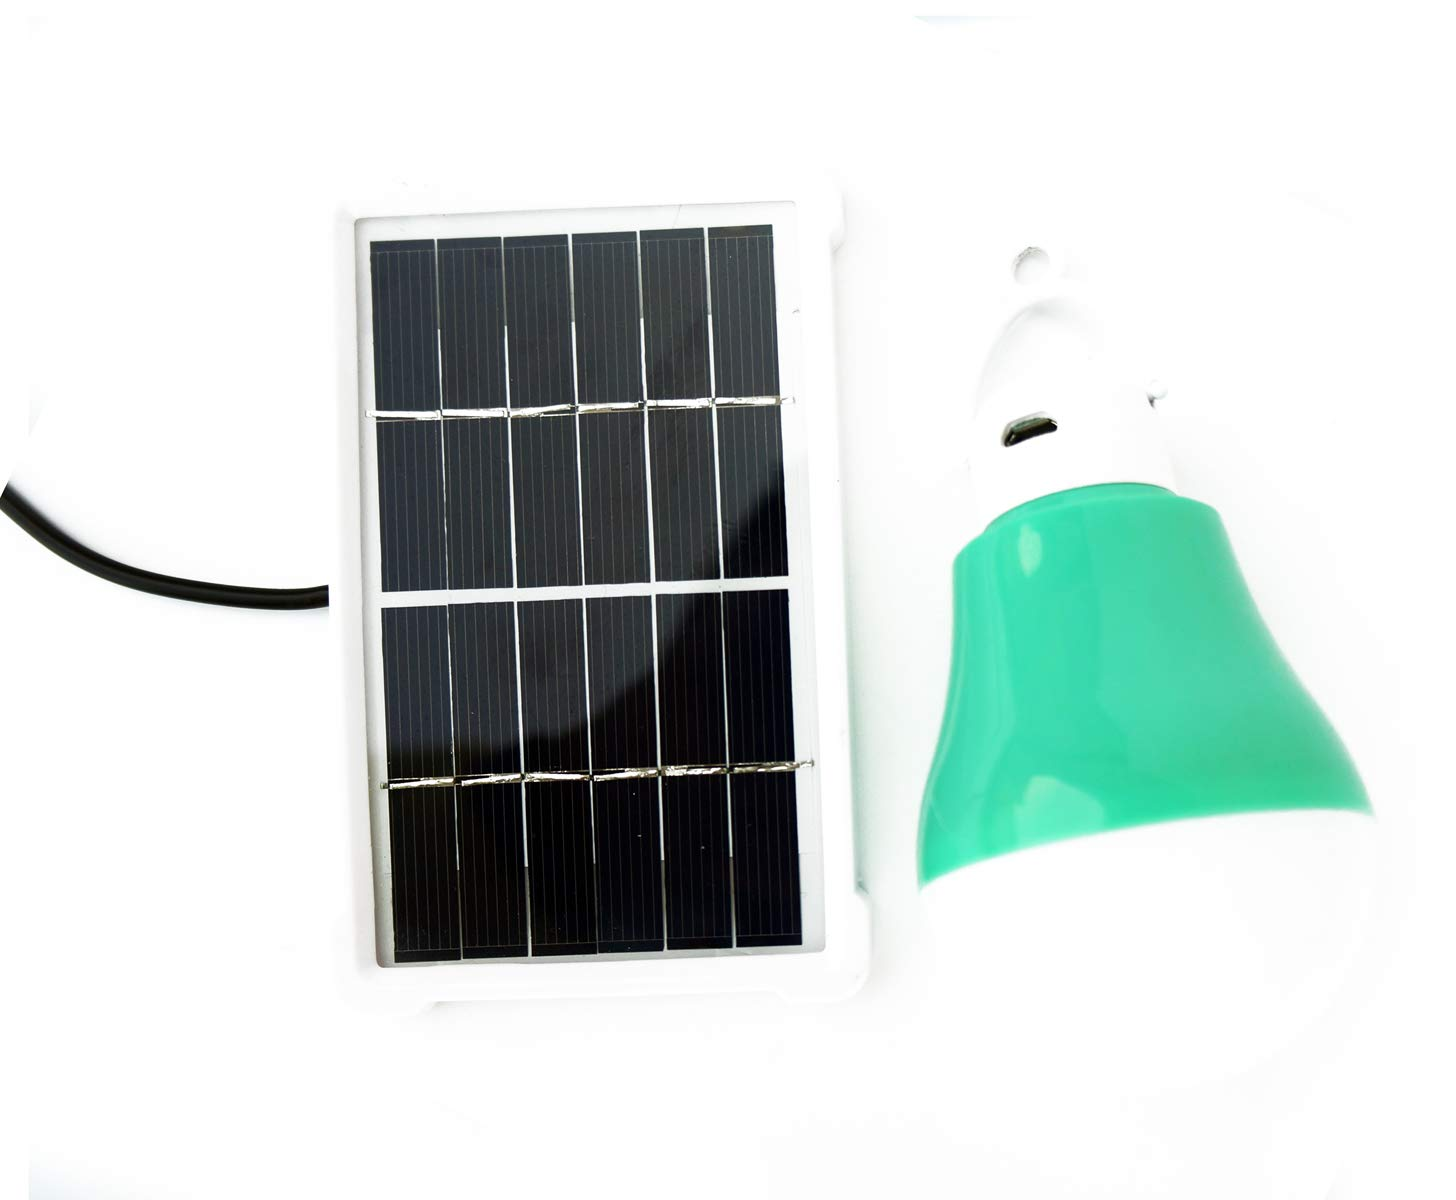 Solar Bulb Lights,Rechargeable Lights Solar Panel Powered Shed Light 5W Portable Led Bulbs Light Charged Solar Energy Lamp Home Lighting for Indoor Outdoor Camping Garden Emergency Lighting